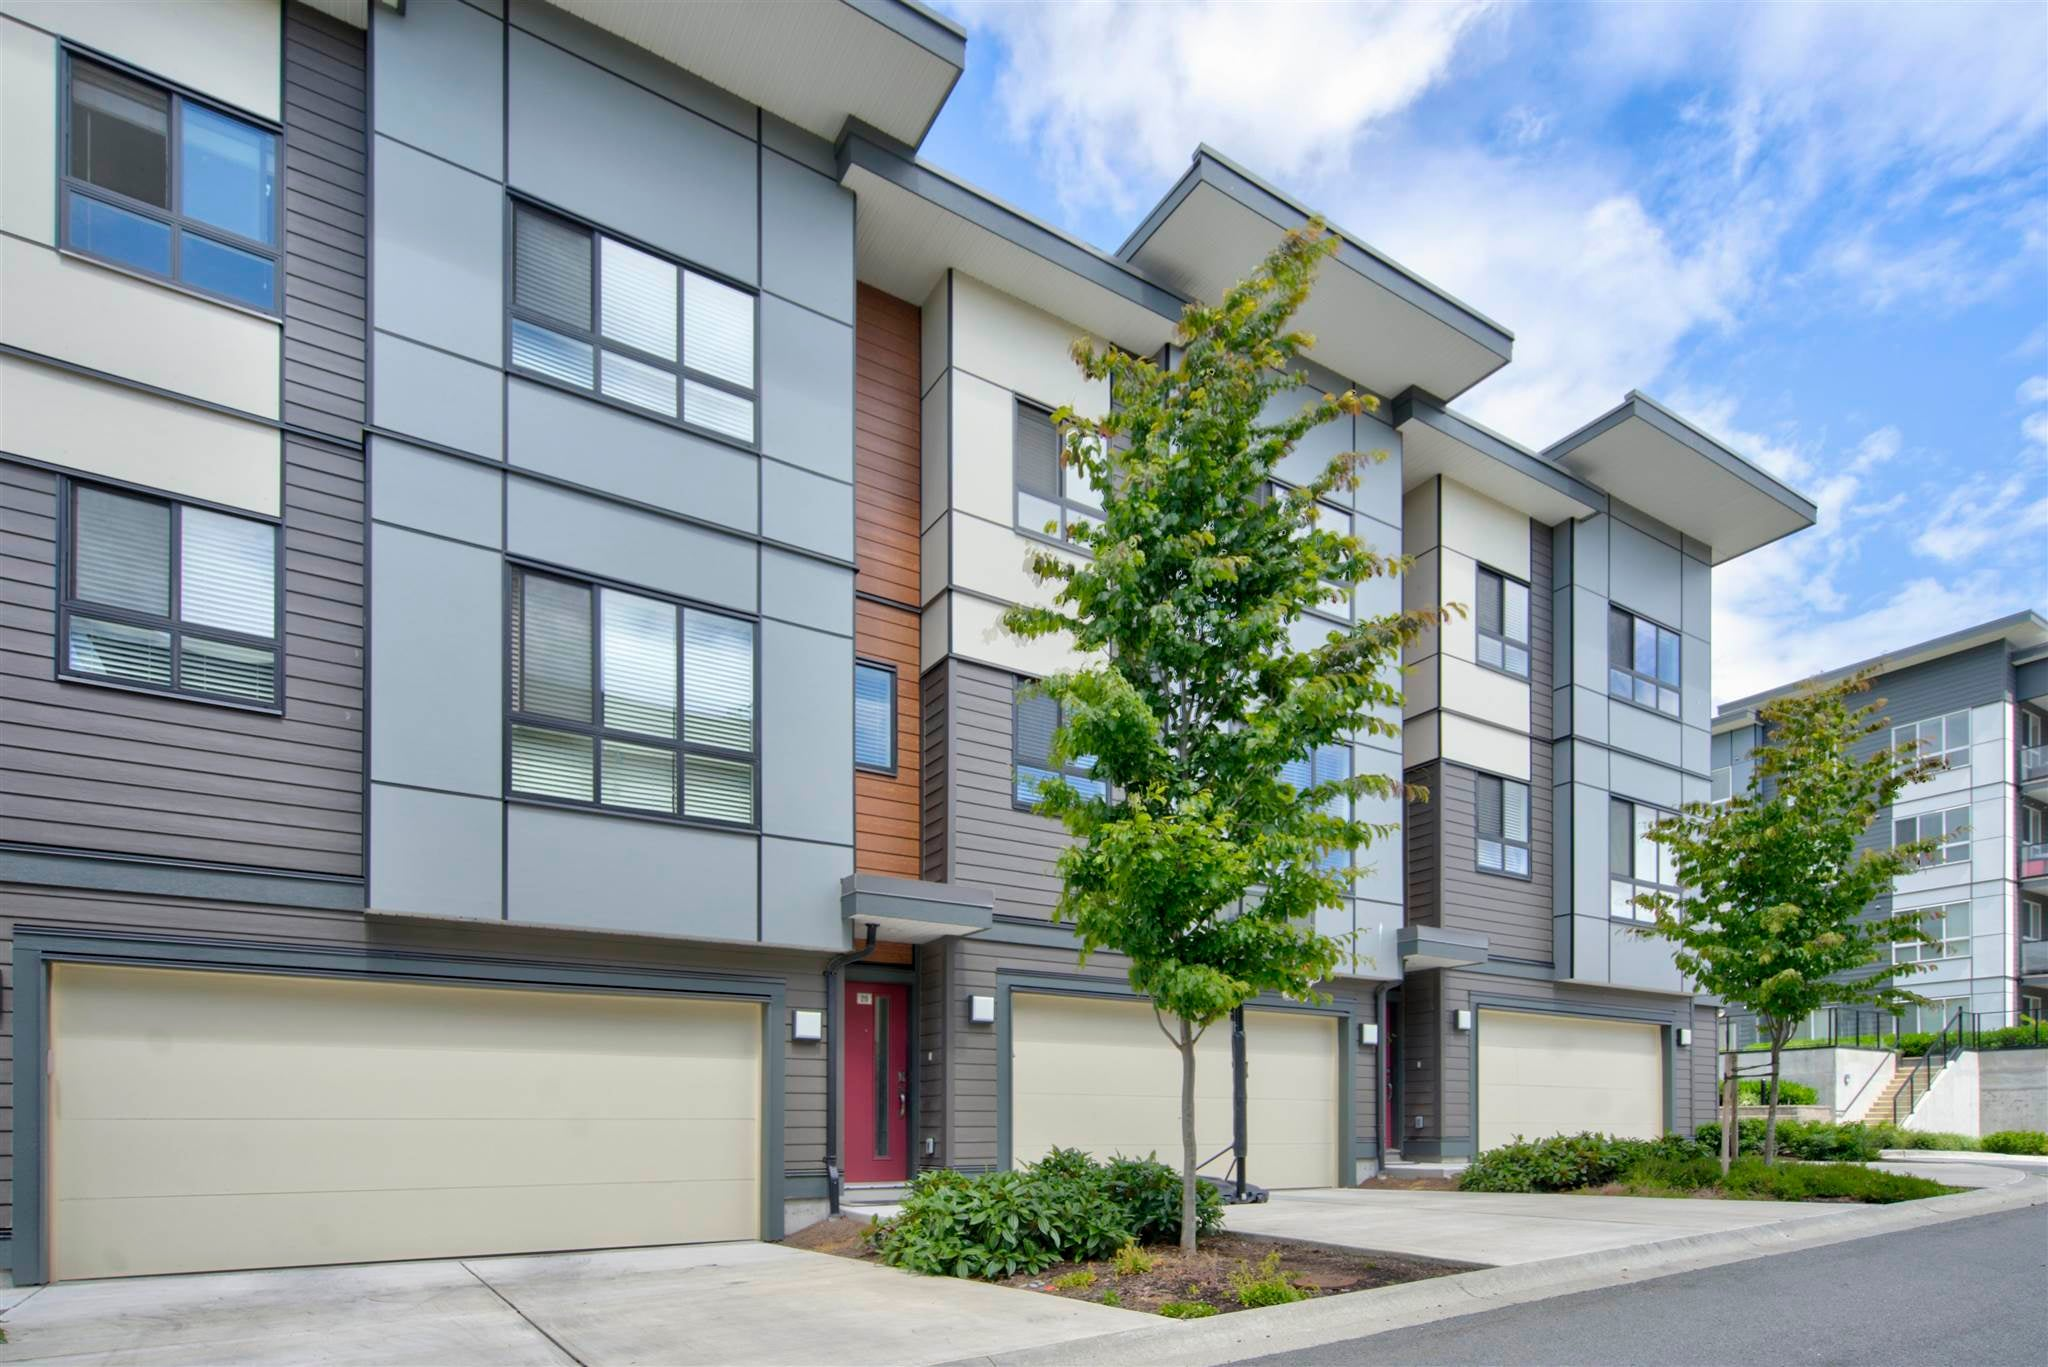 20 1938 NORTH PARALLEL ROAD - Abbotsford East Apartment/Condo for sale, 3 Bedrooms (R2604253) - #1